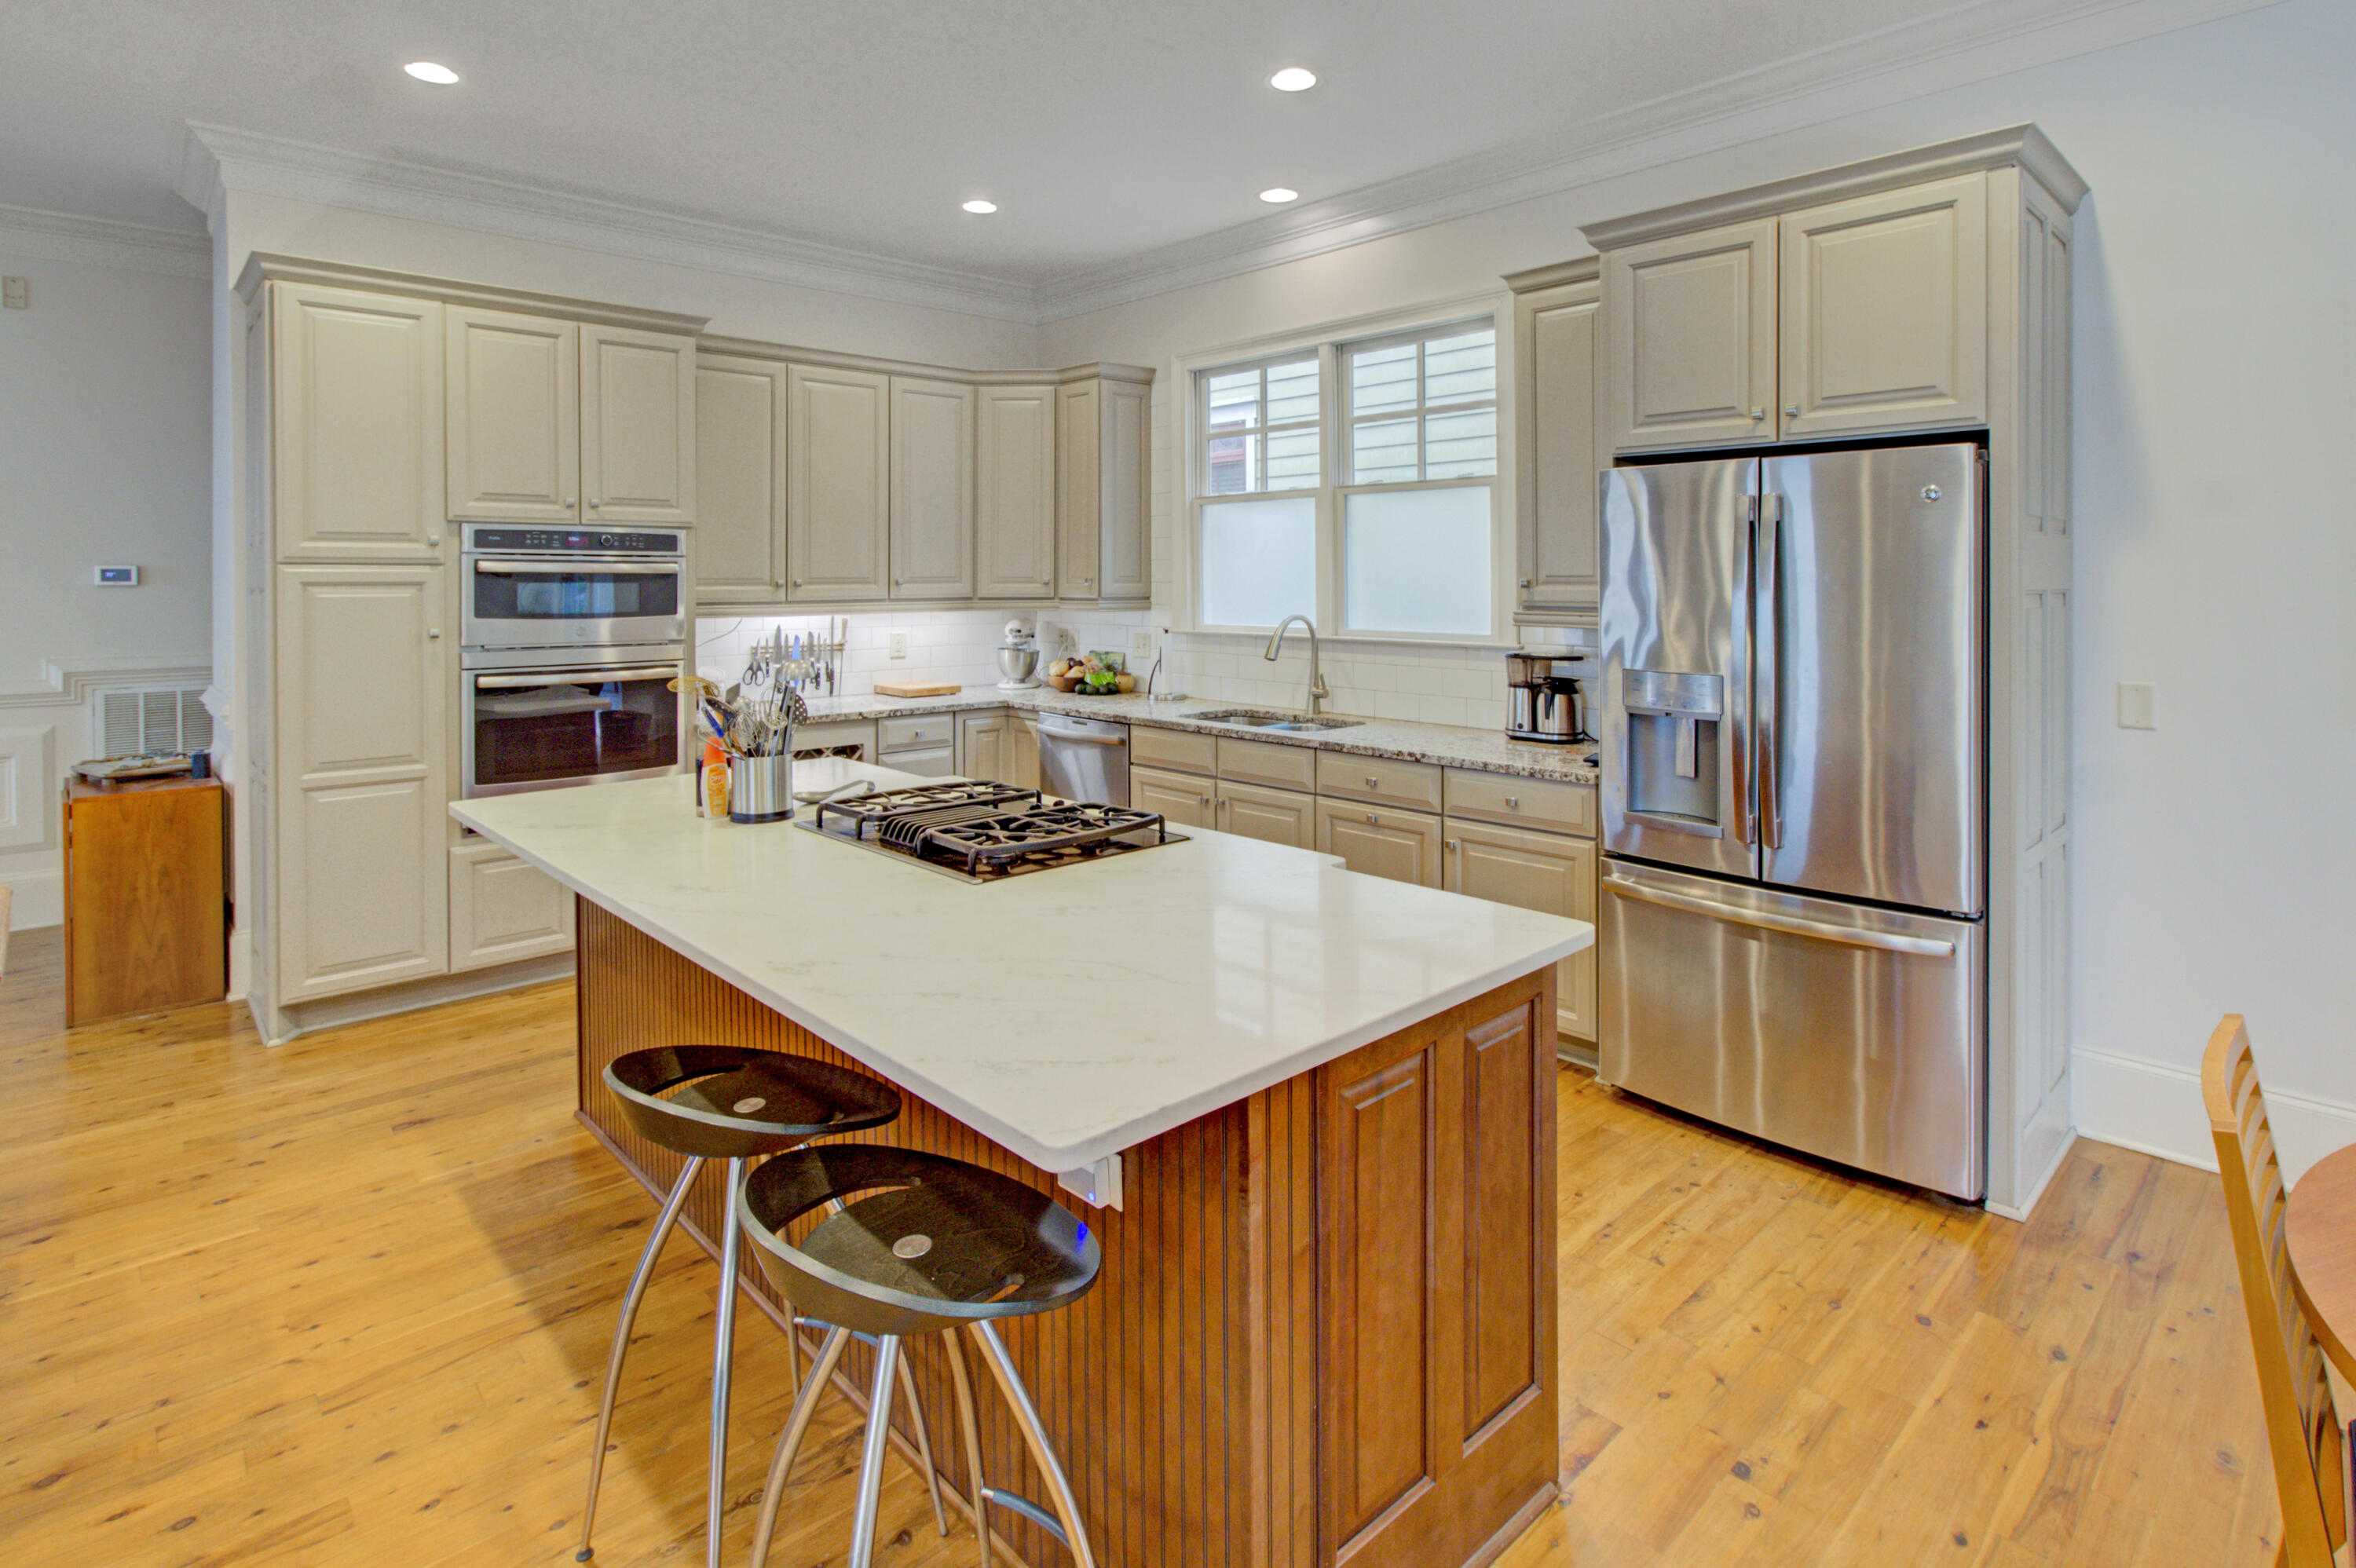 Watermark Homes For Sale - 1433 Lettered Olive, Mount Pleasant, SC - 20